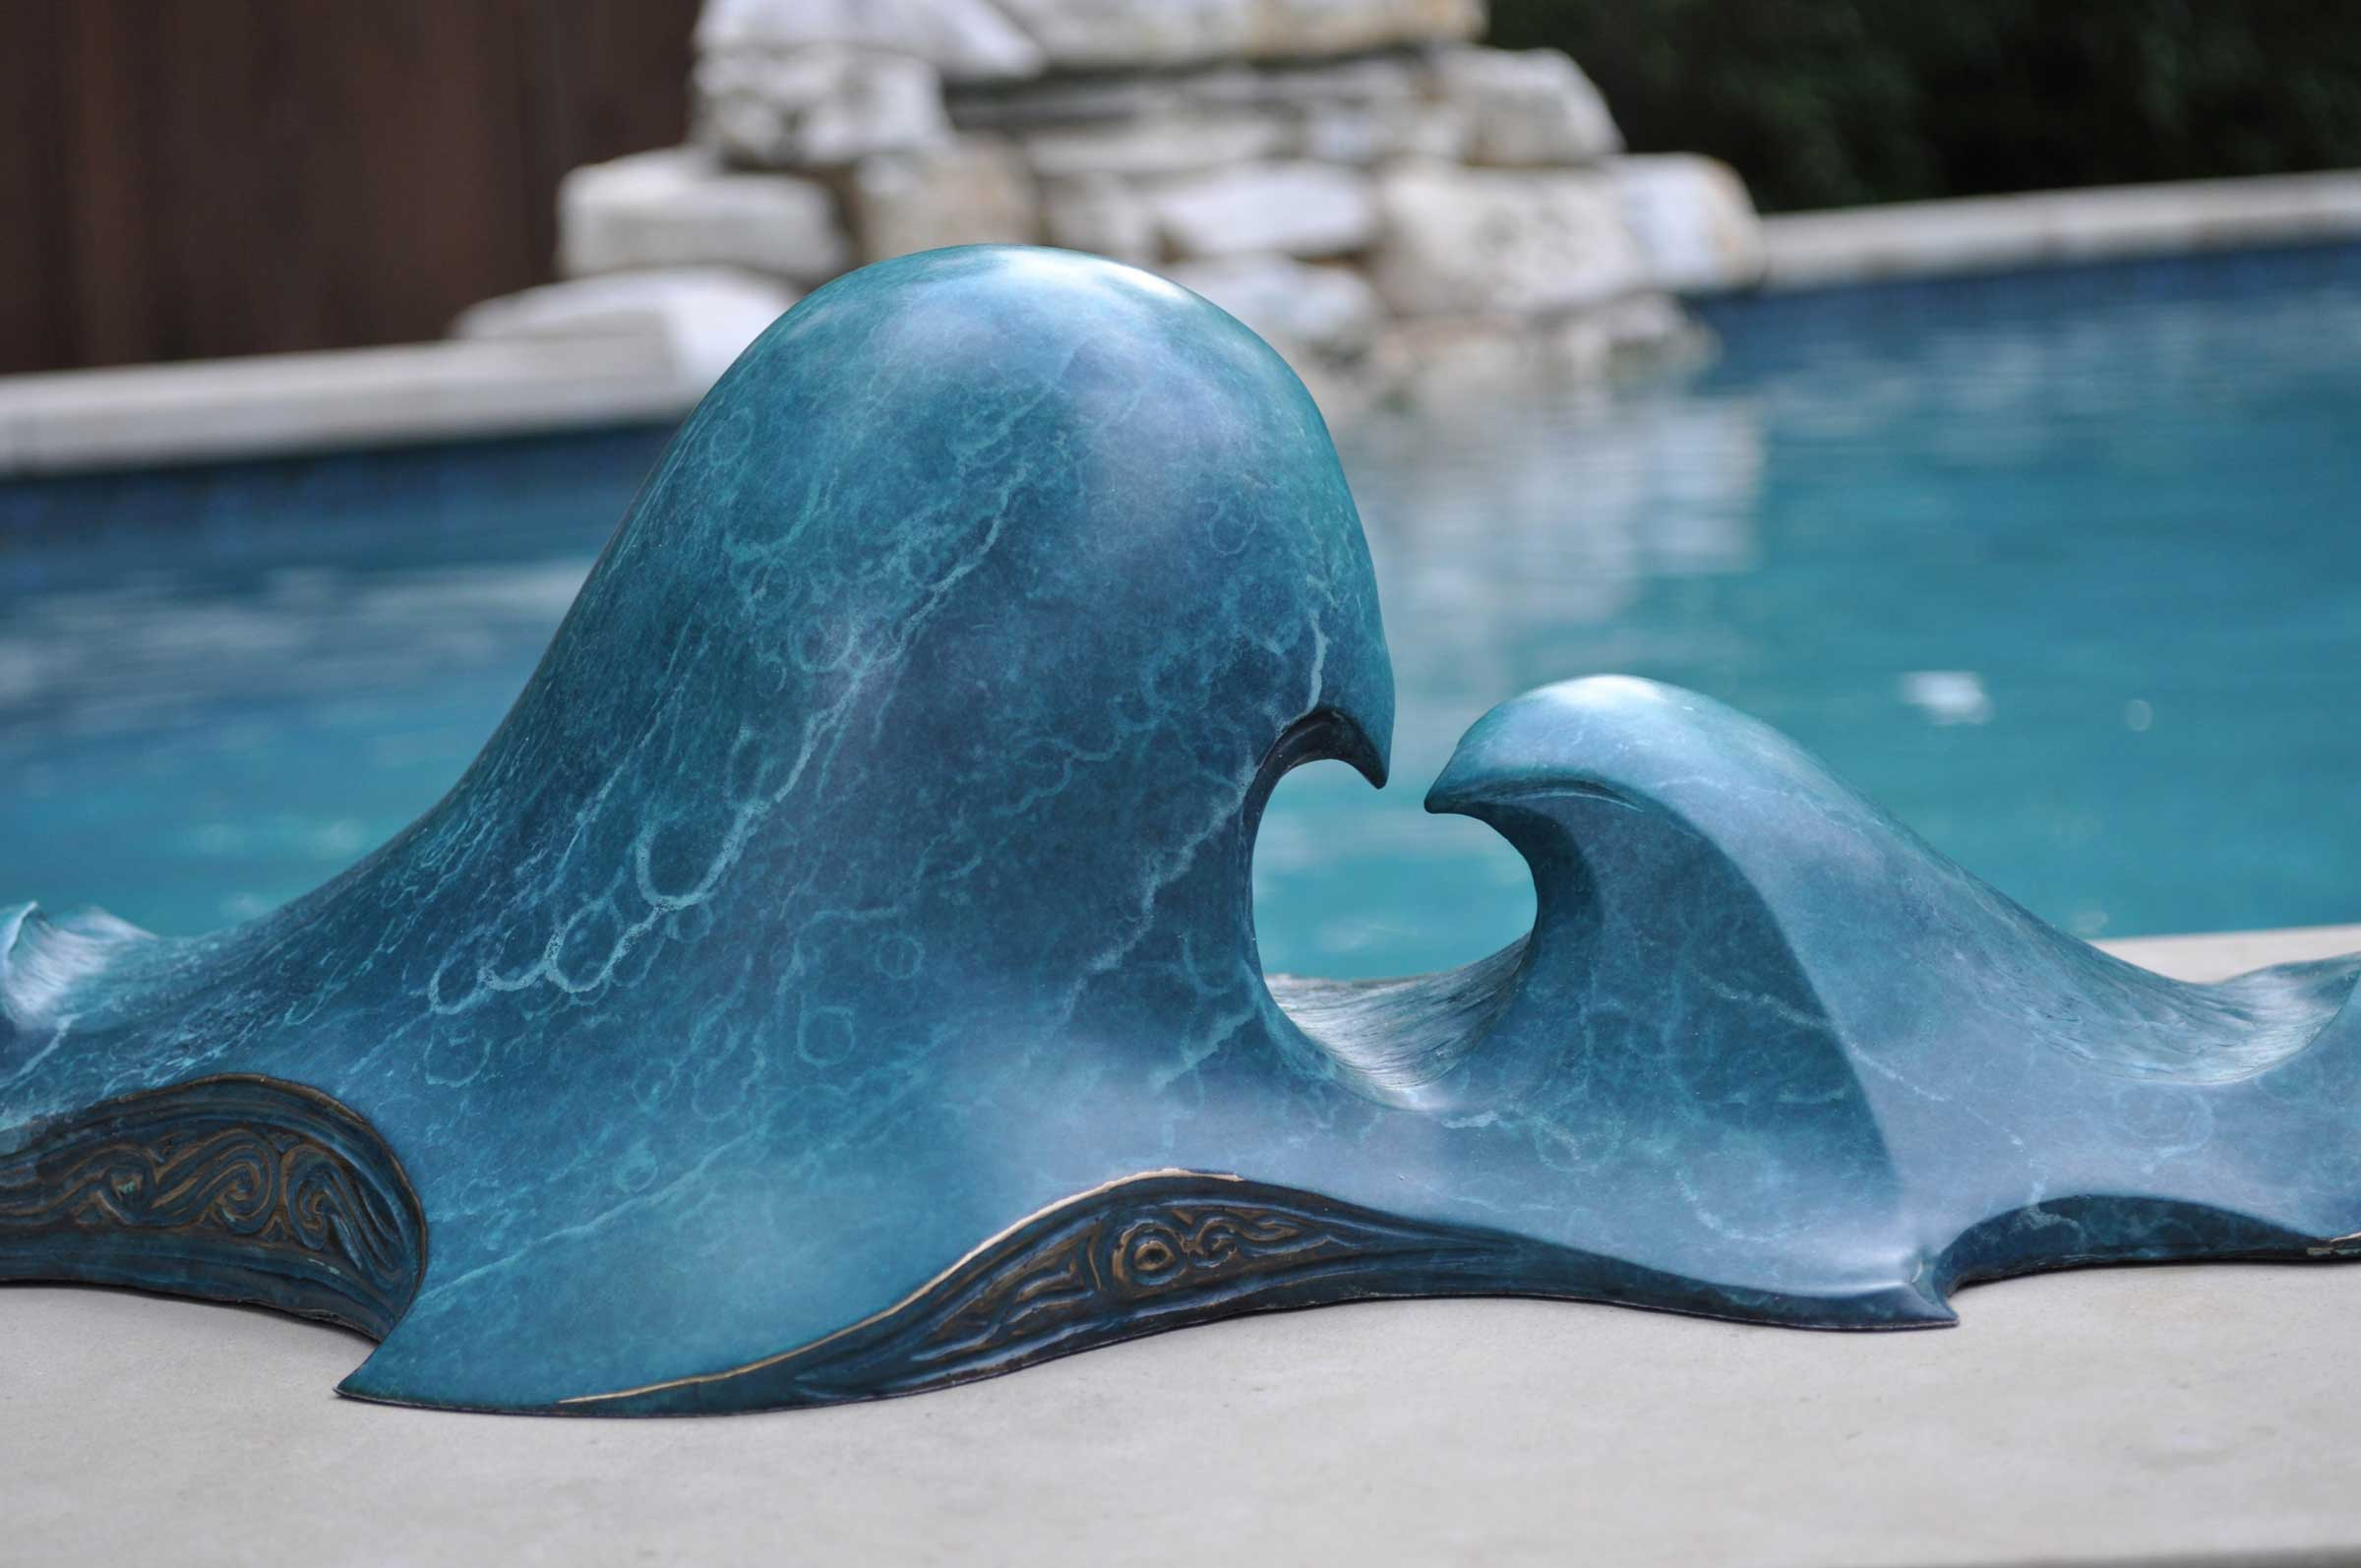 bronze-heart-wave-sculpture-john-maisano-8.jpg